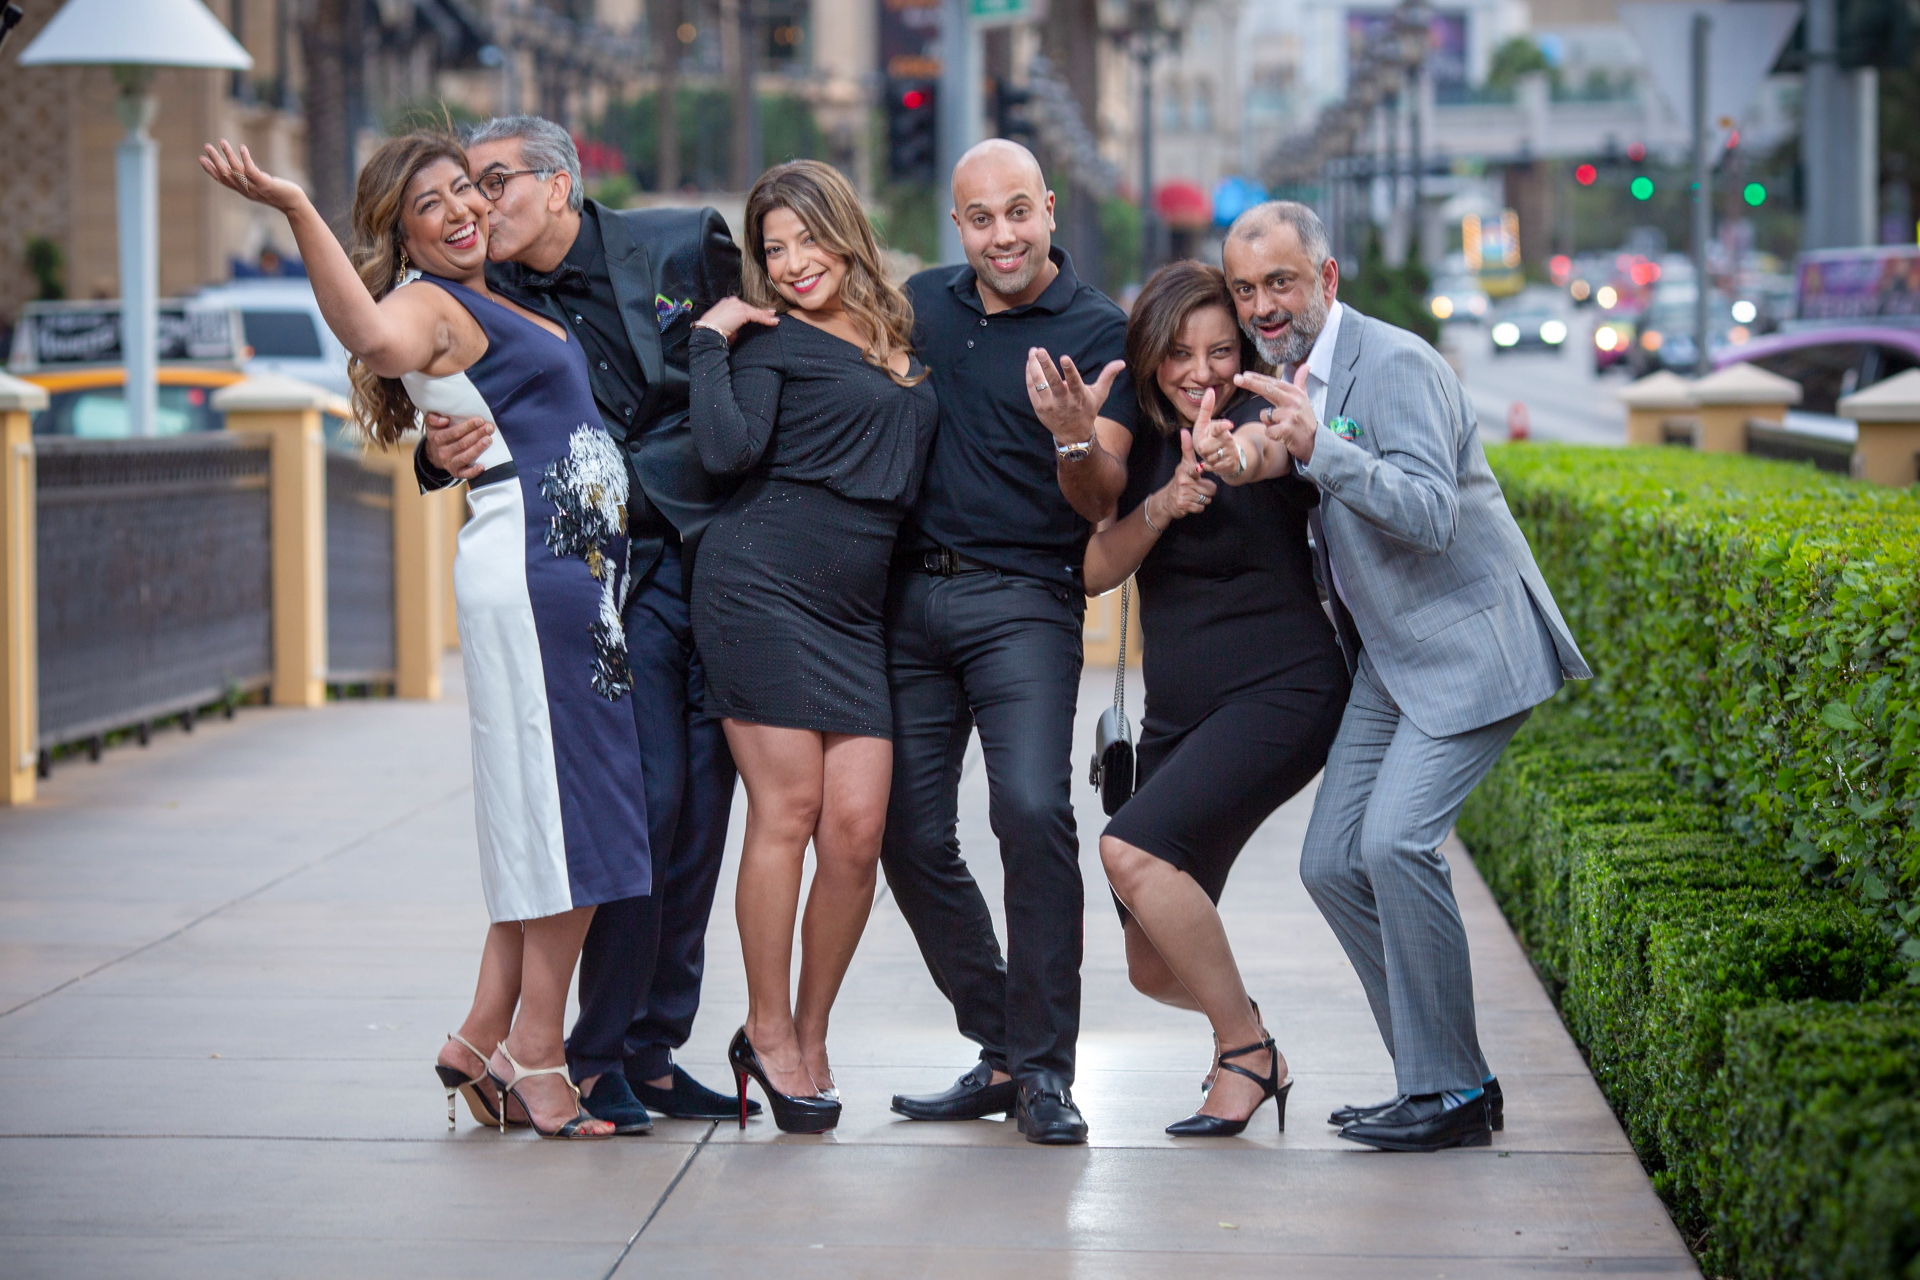 Christian Purdie Photography Offers Family Portrait Options for Families in Las Vegas